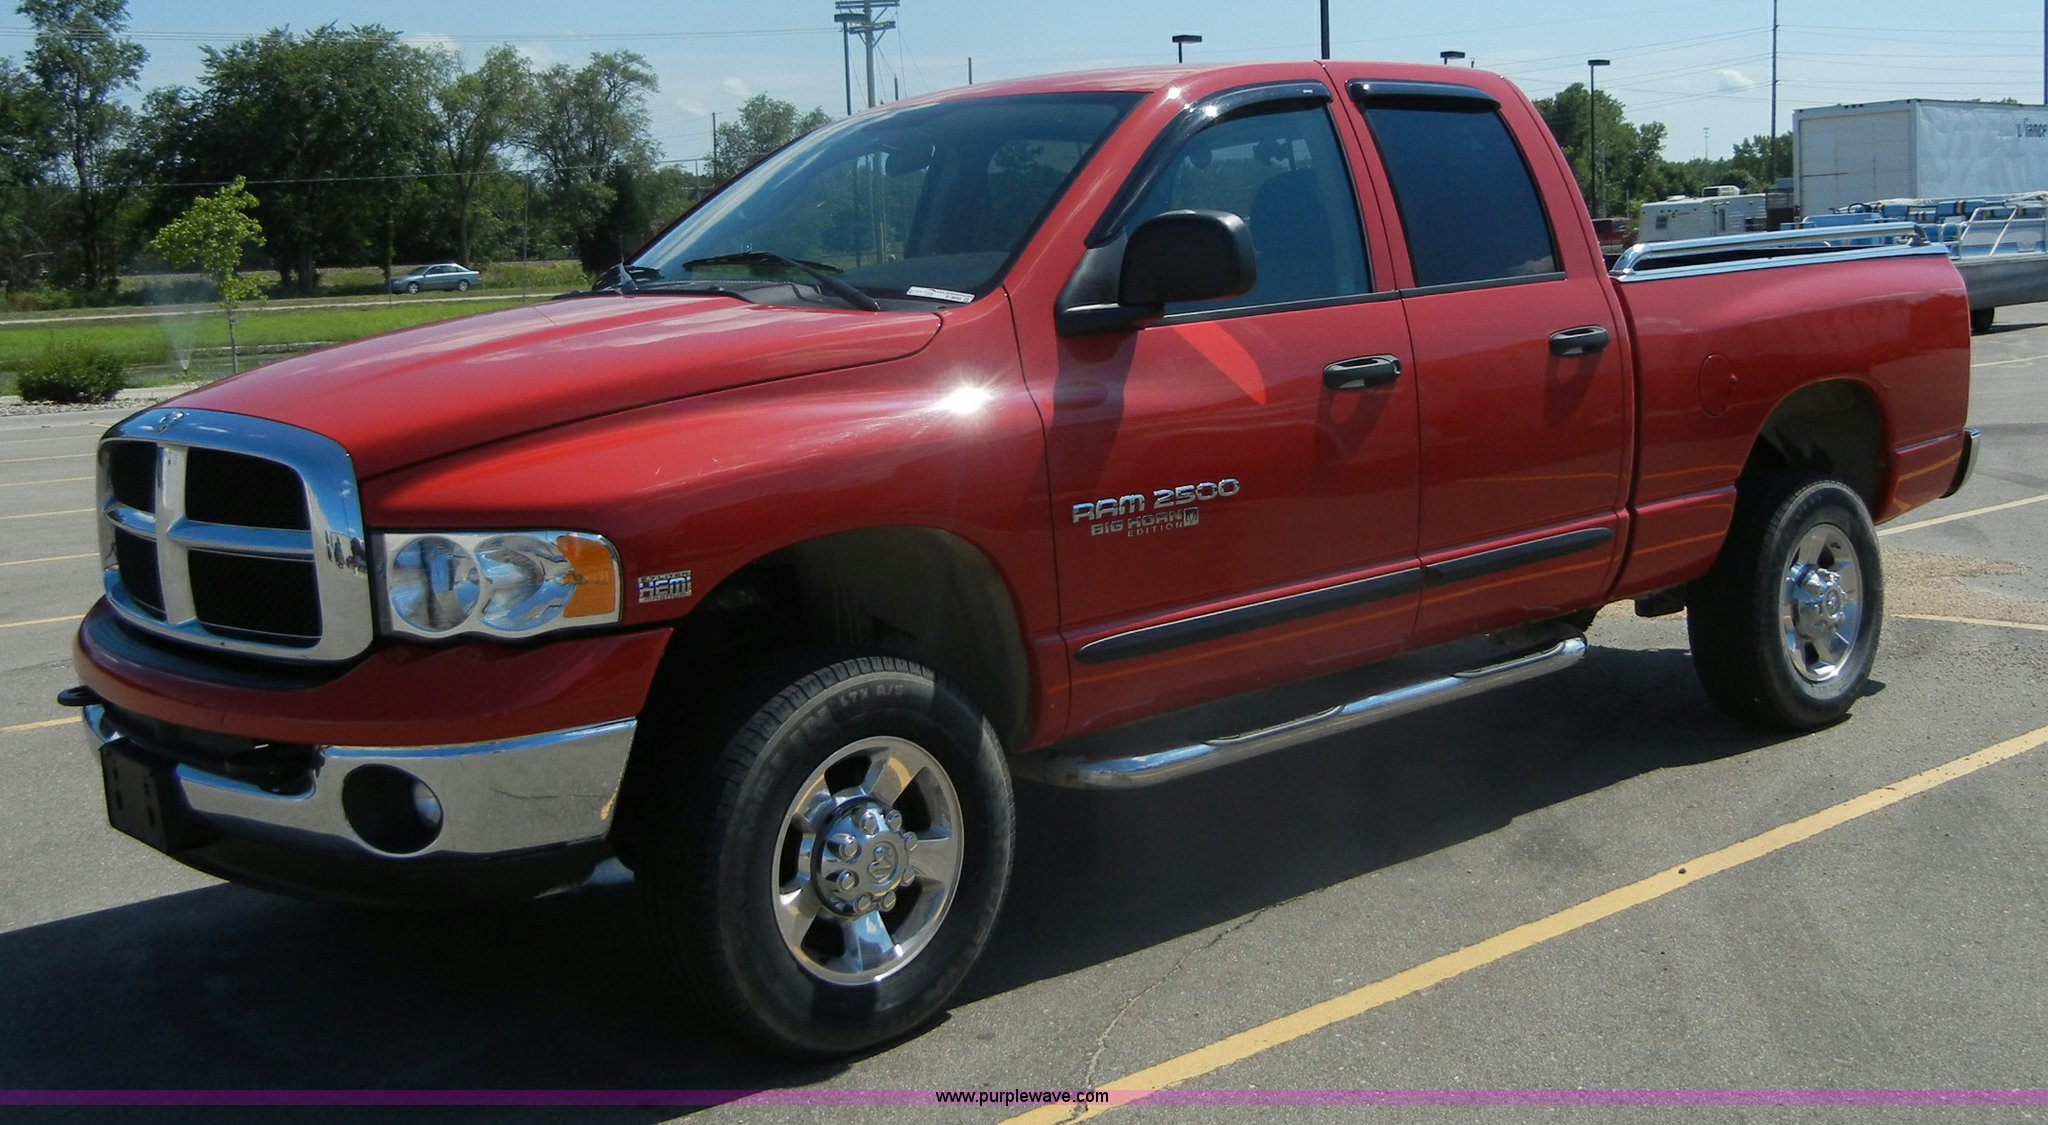 2005 Dodge Ram 2500 Slt Big Horn Edition Quad Cab Pickup Tru Hemi Full Size In New Window